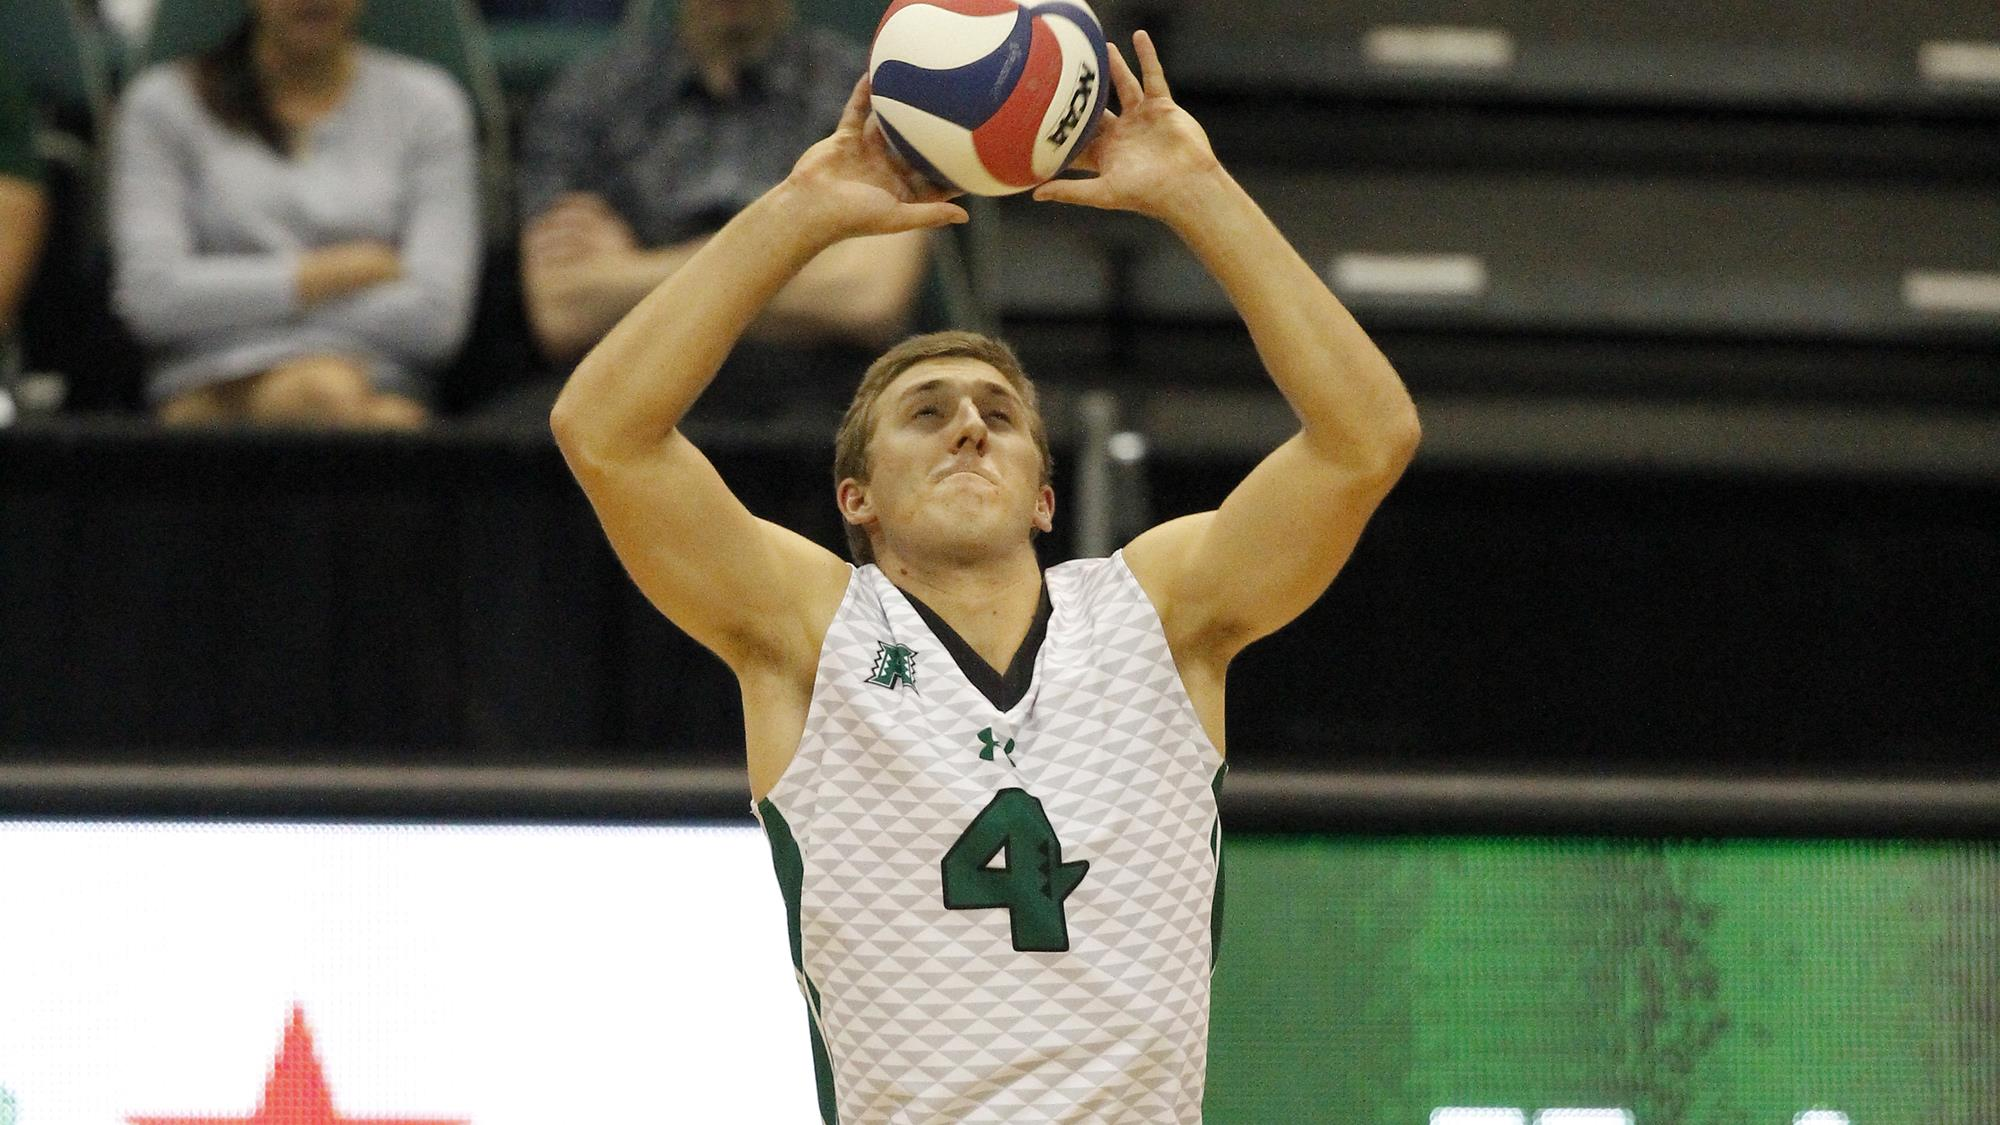 Brett Sheward Men S Volleyball University Of Hawai I At Manoa Athletics